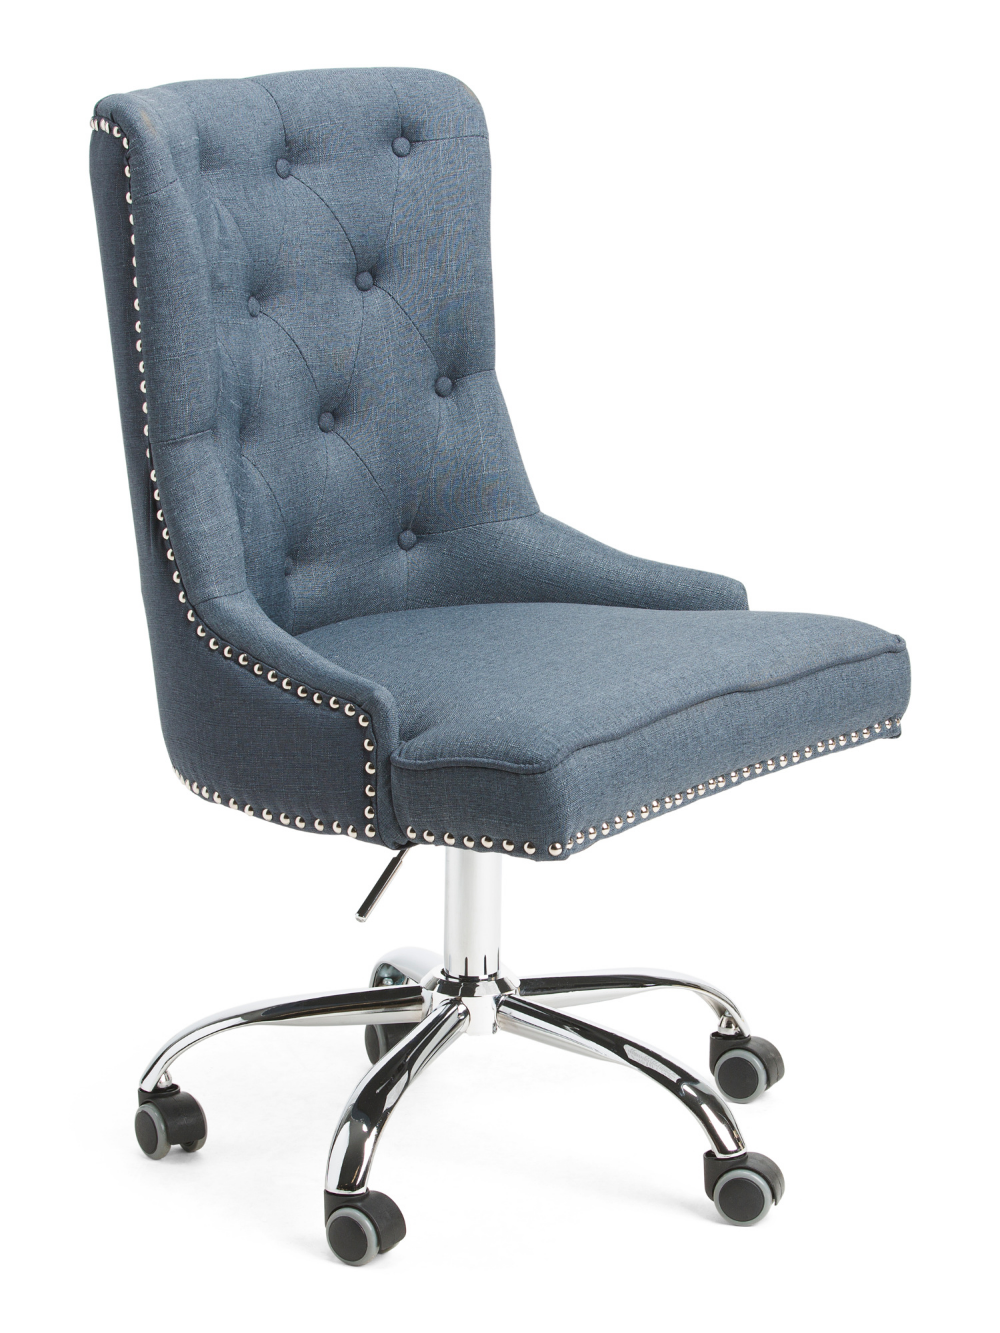 Raven Office Chair Best office chair, White leather